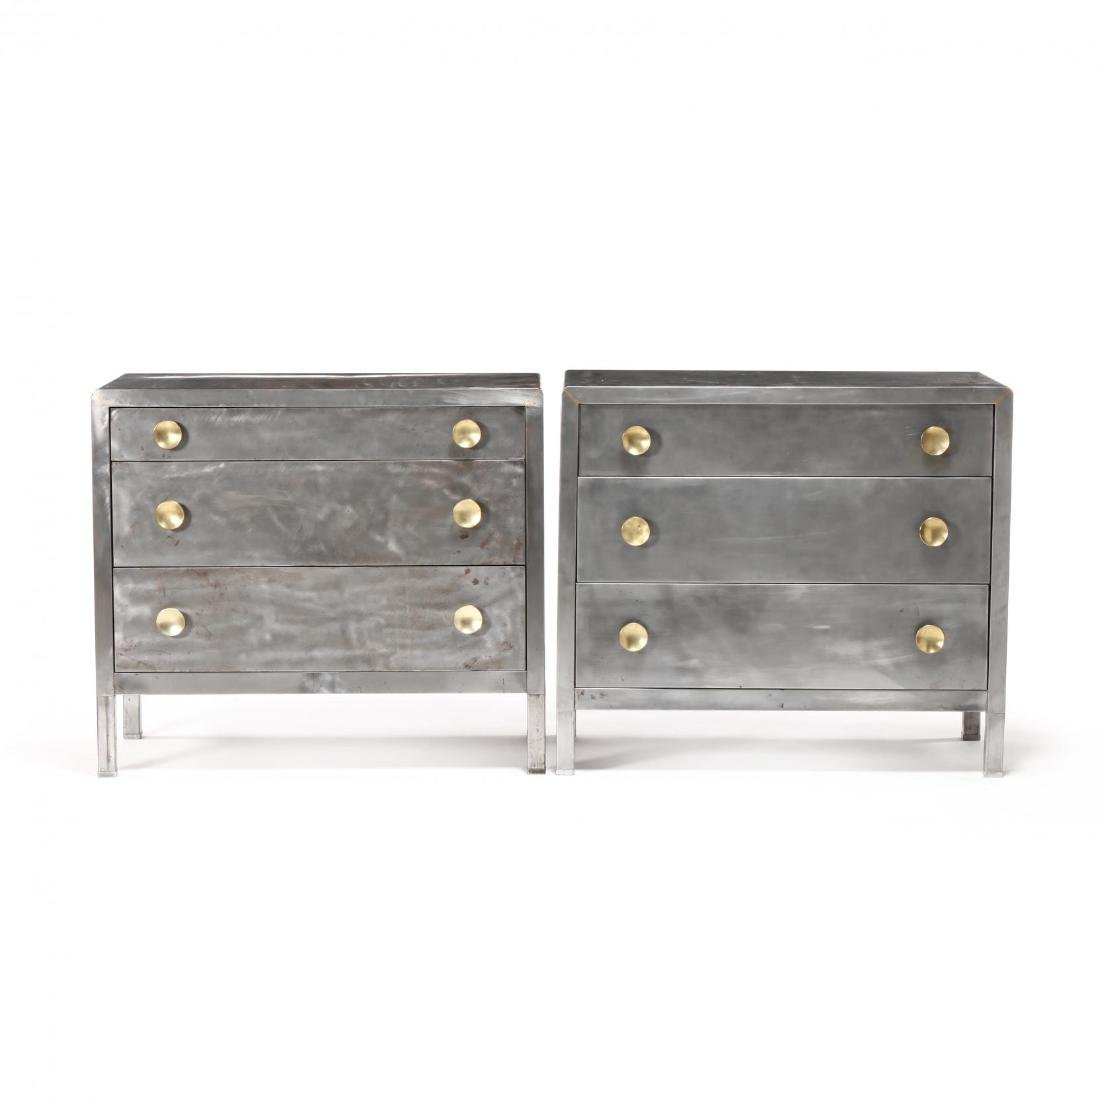 Norman Bel Geddes, Pair of Industrial Metal Chests